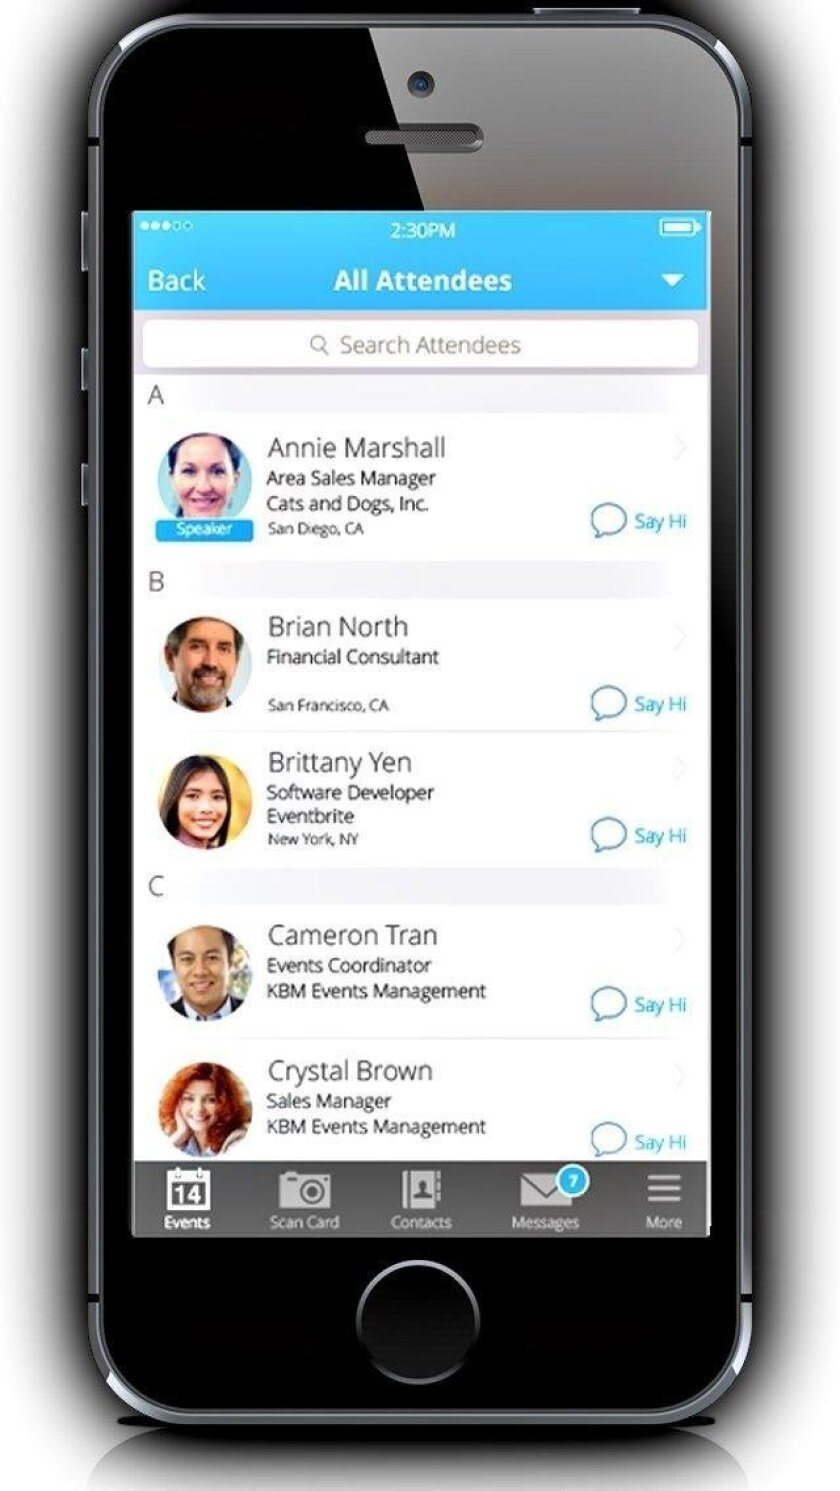 San Diego's Whova makes an app that helps attendees navigate and network at conventions and events